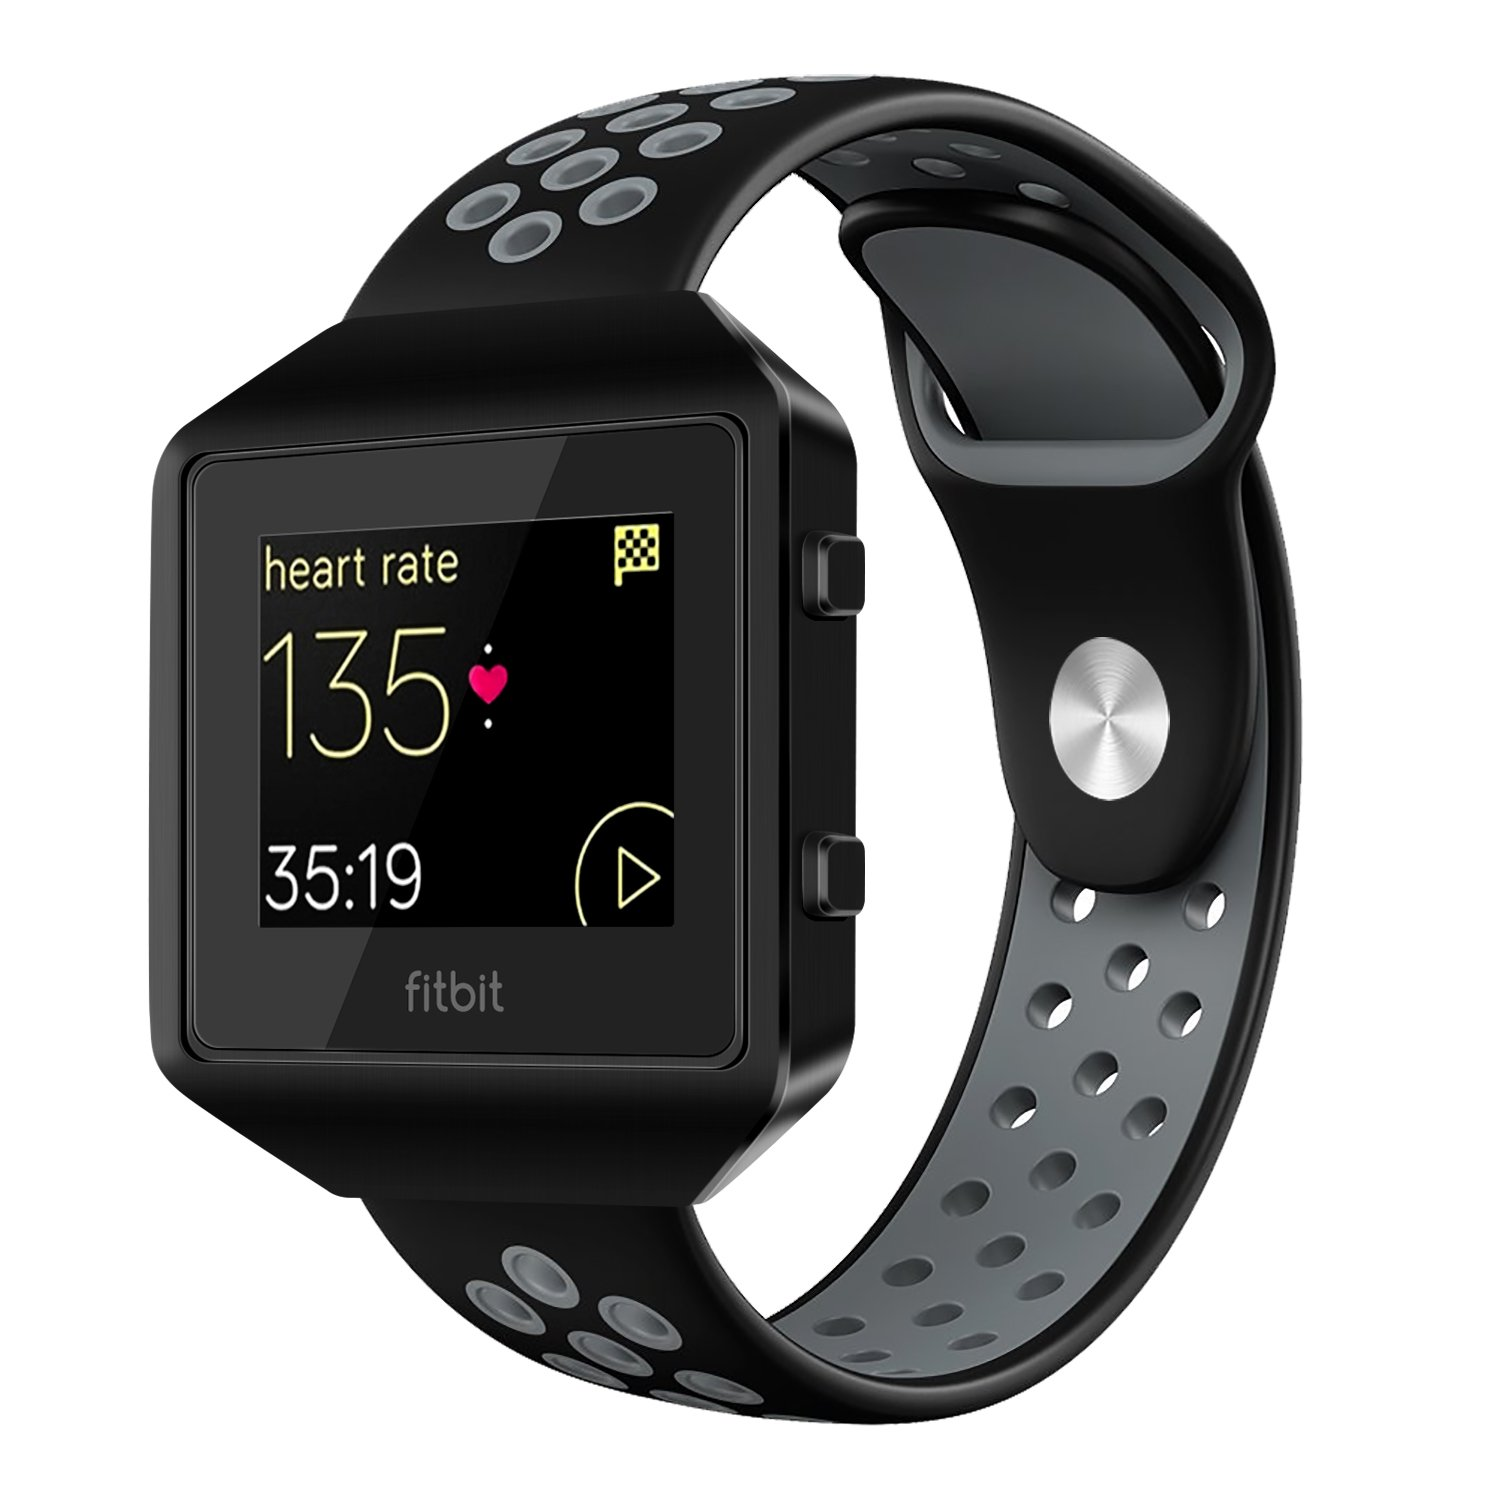 For Fitbit Blaze Band Accessory, VODKE Silicone Breathable Replacement Band/Strap with New Frame for Fitbit Blaze Men Women Large(BLACK+GRAY+BLACK Frame)